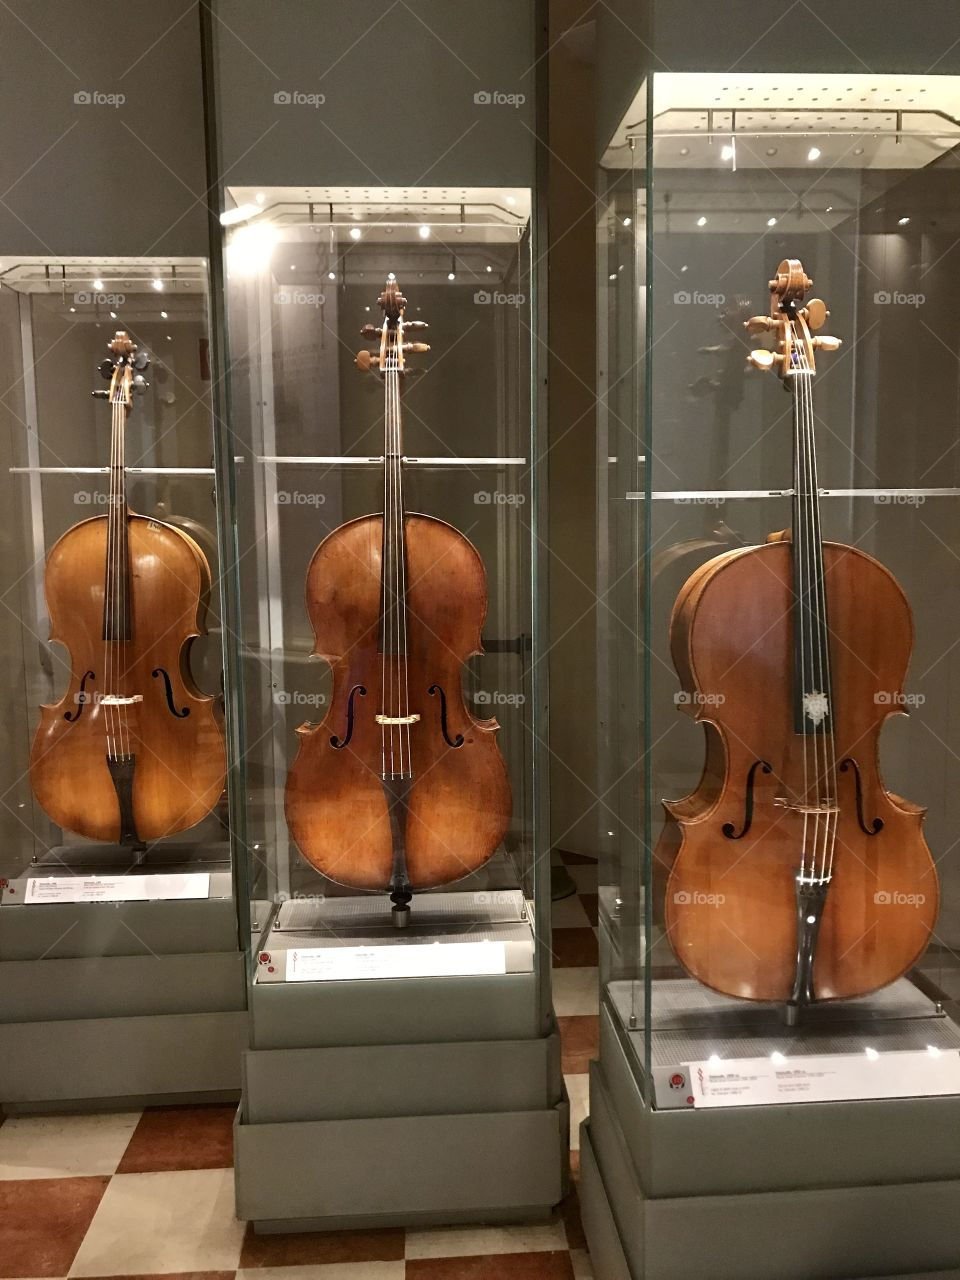 I'm the halls of the Accademia, houses the Museo of Music! Here 3 pristine double bass stand!